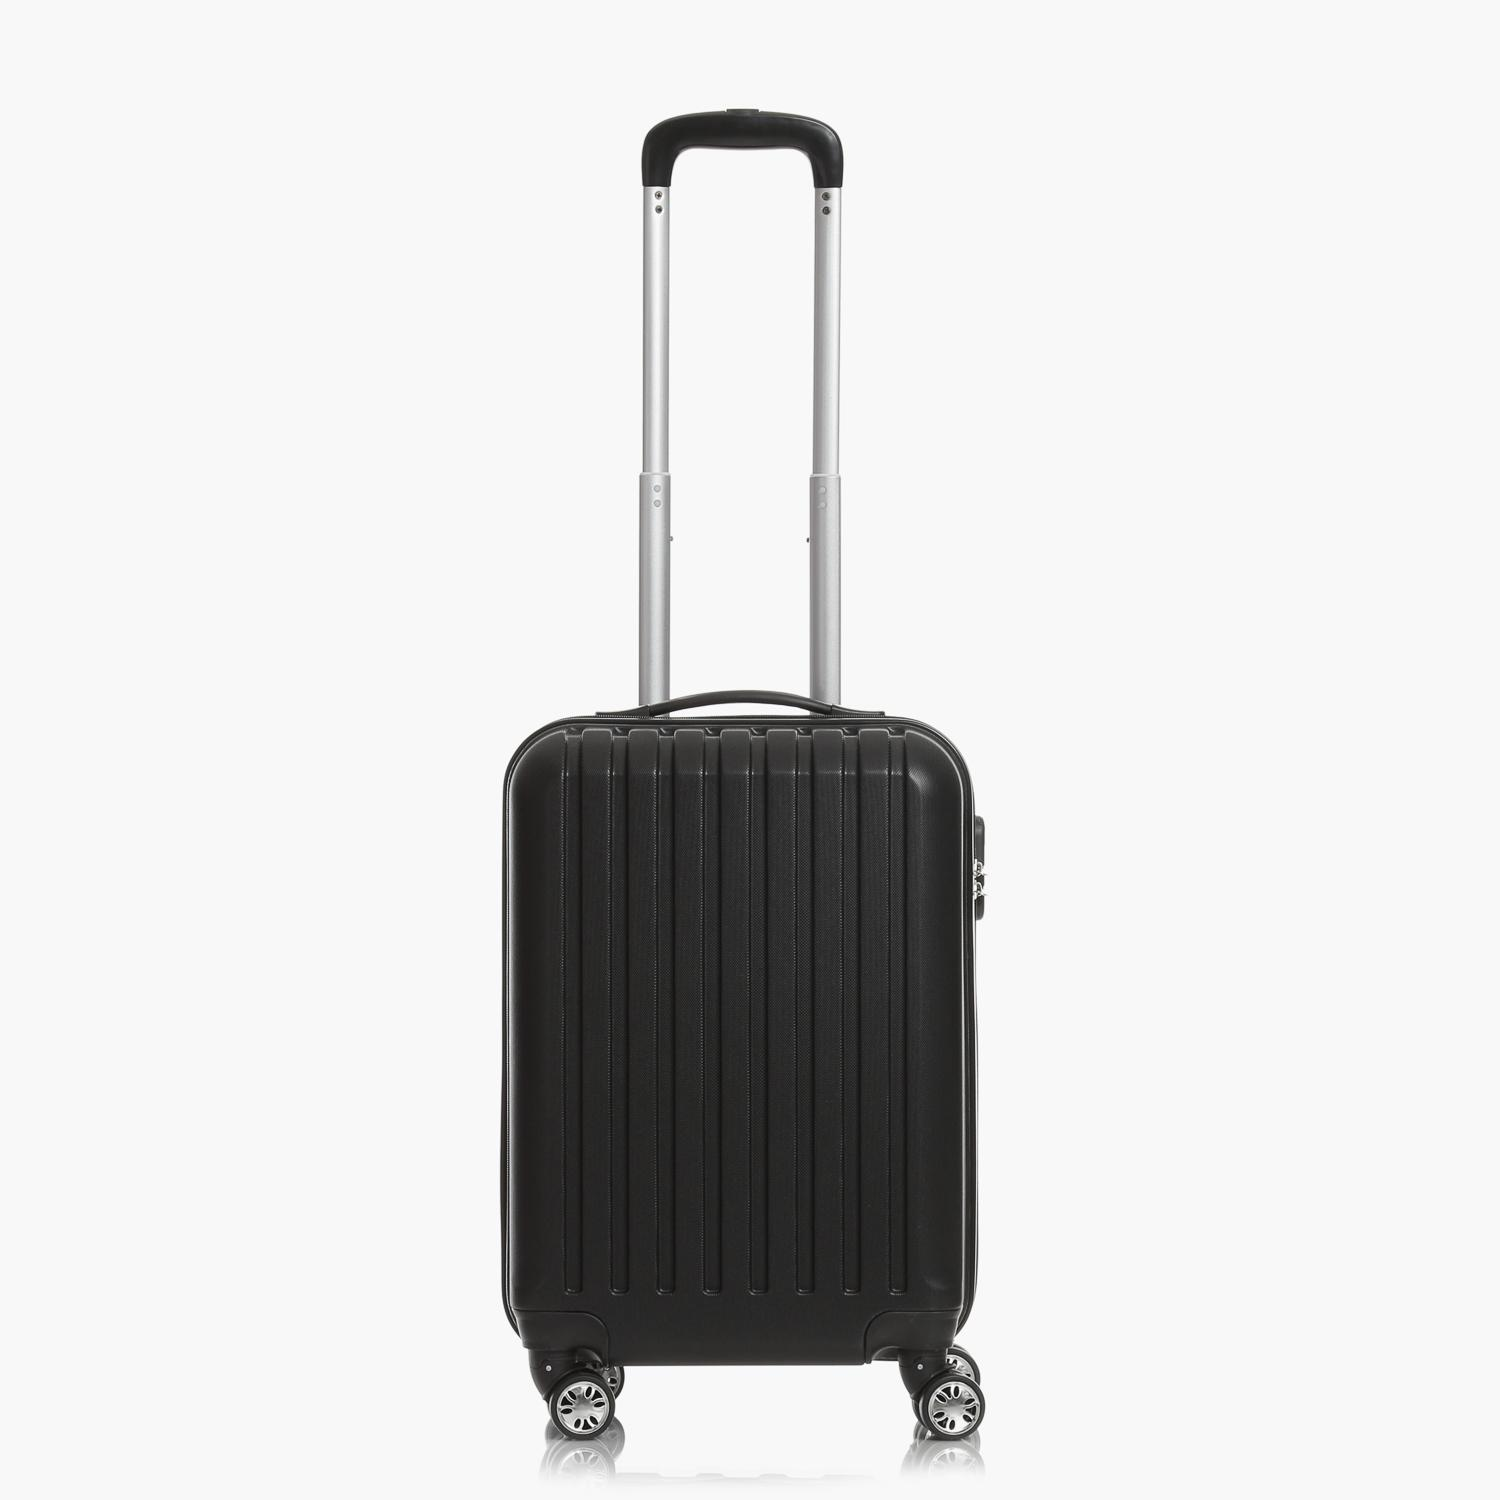 Luggage for sale - Luggage Bag online brands, prices   reviews in ... 25545dbb29